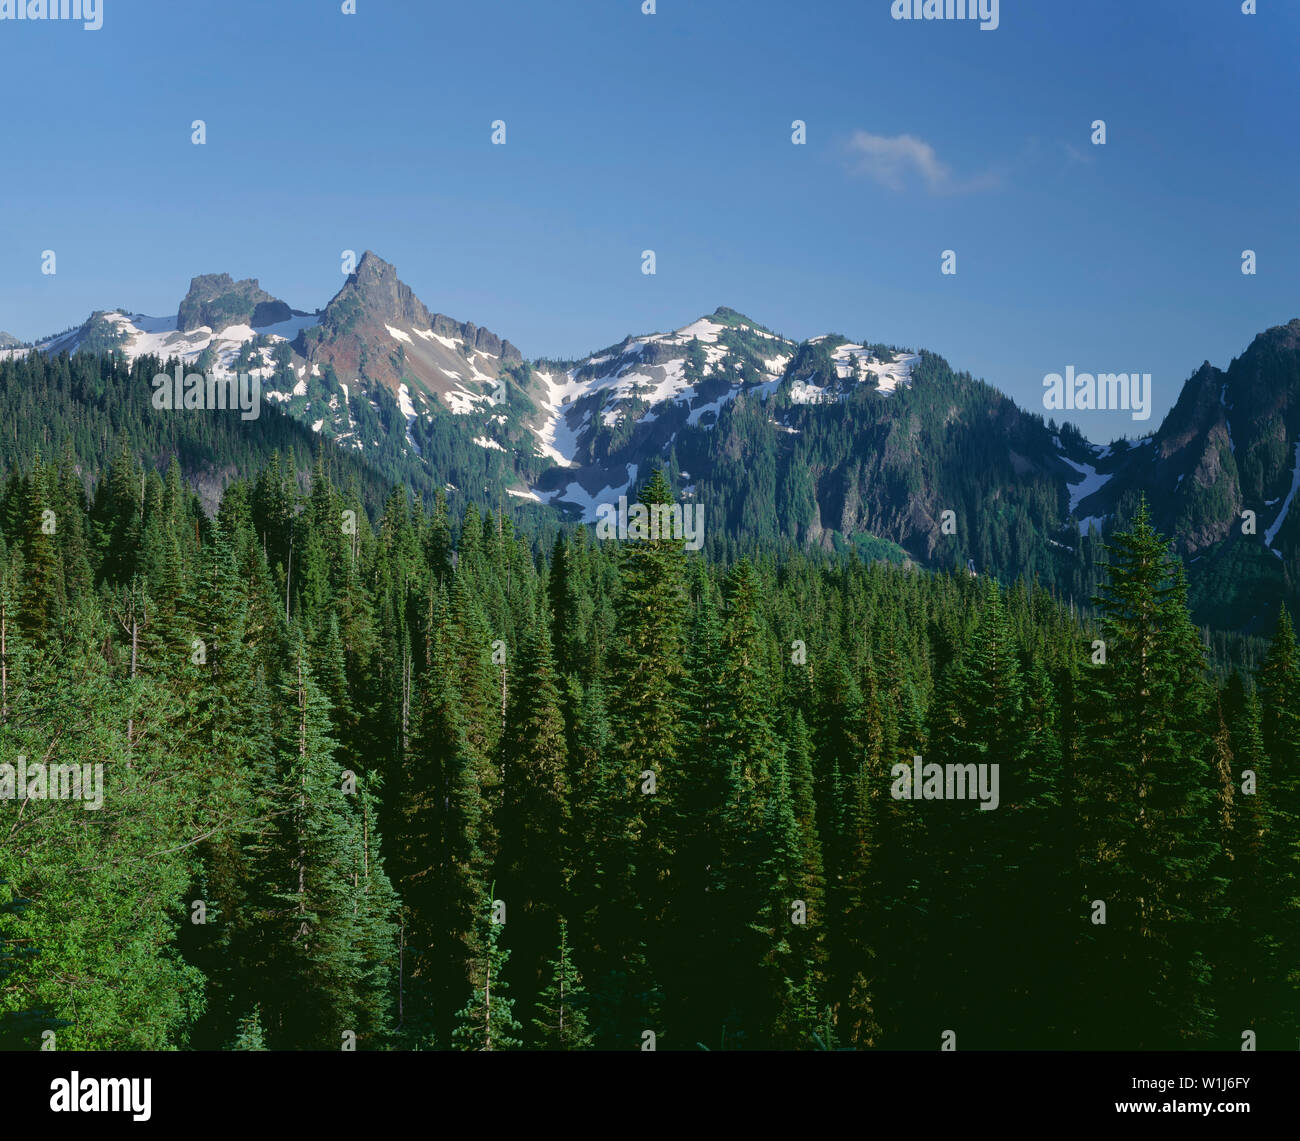 USA, Washington, Mt. Rainier National Park, Coniferous forest in early summer with previous winter's snowpack lingering on the peaks of Tatoosh Range. - Stock Image